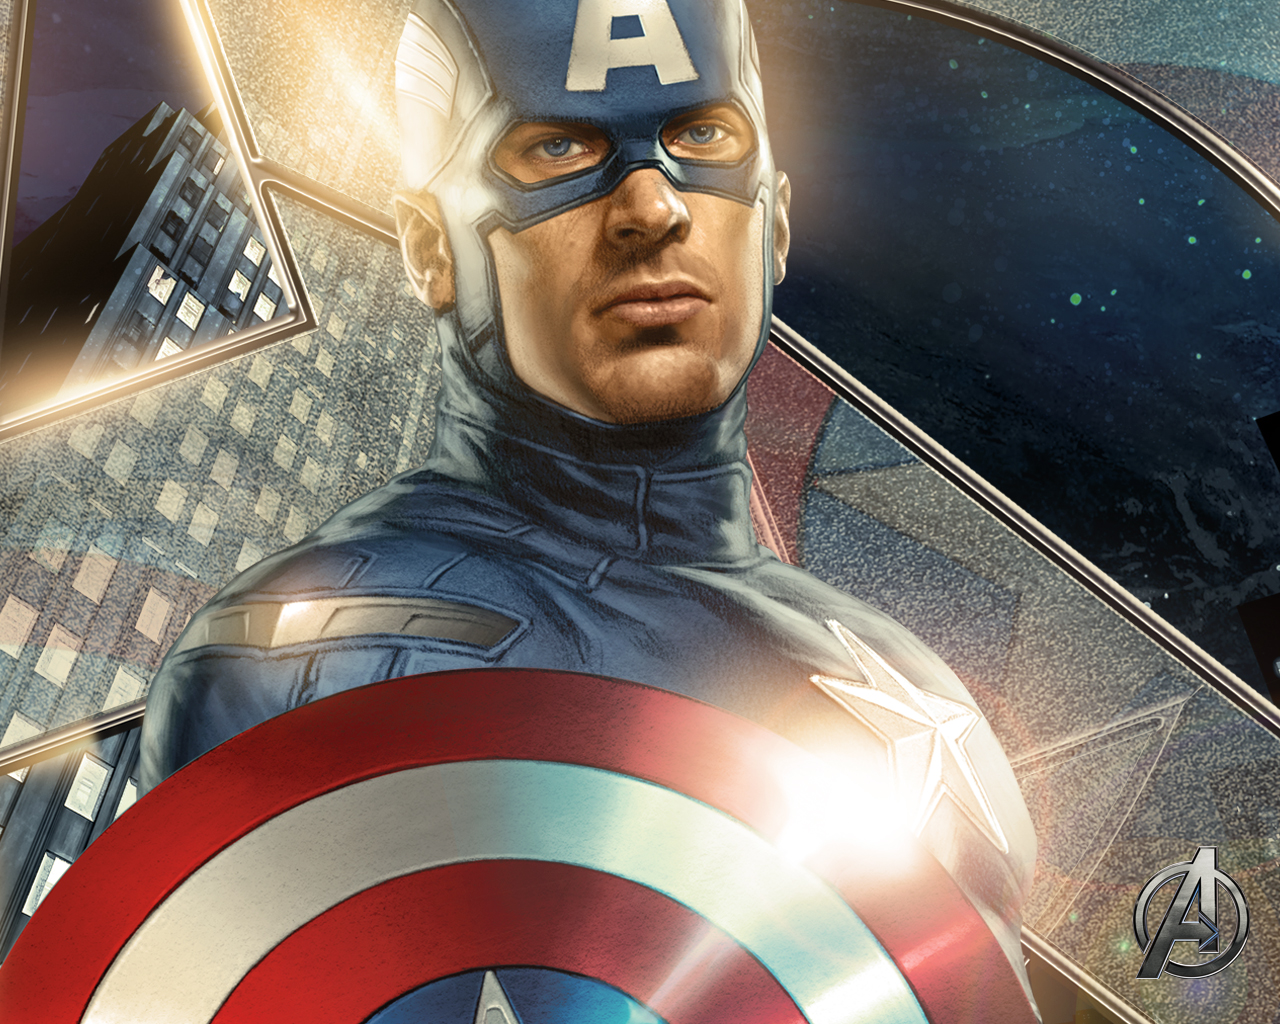 capitan america avengers wallpaper